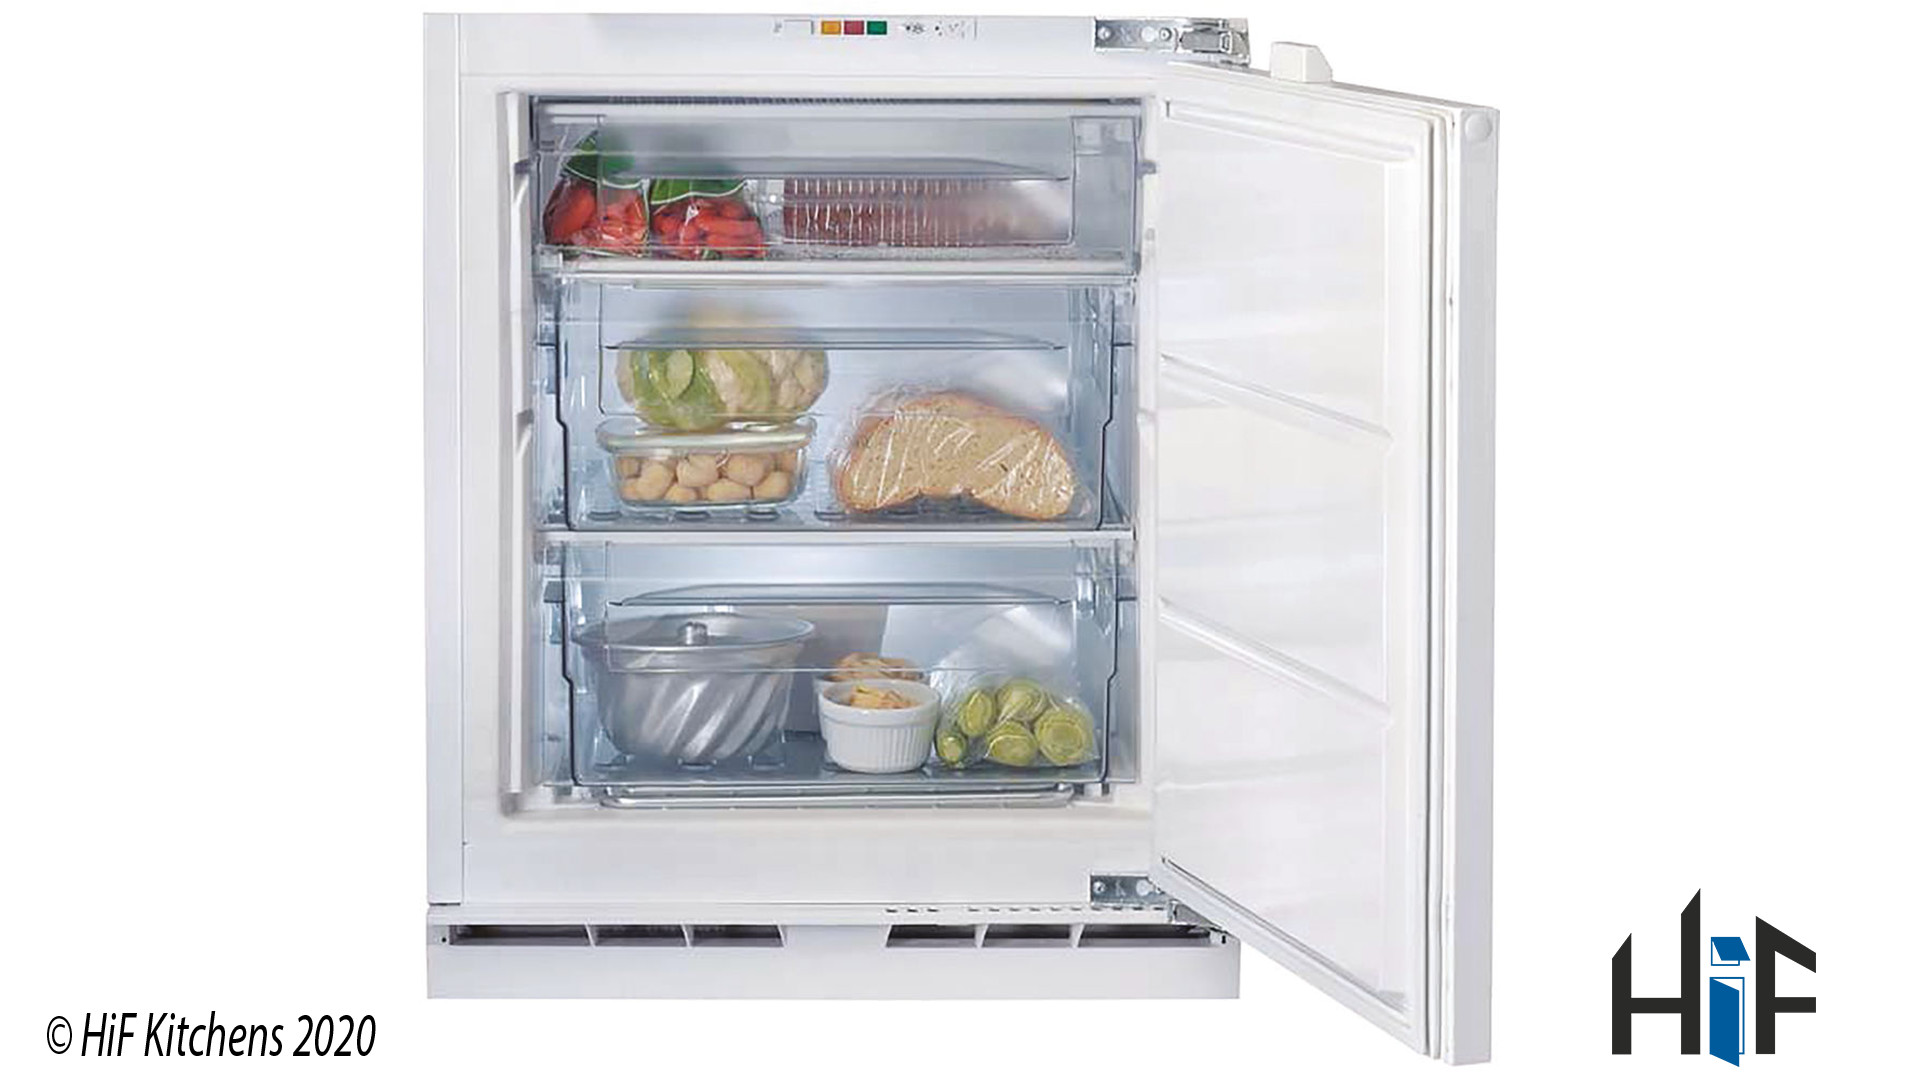 Indesit IZ A1.UK.1 Integrated Freezer In White supplied by HiF Kitchens